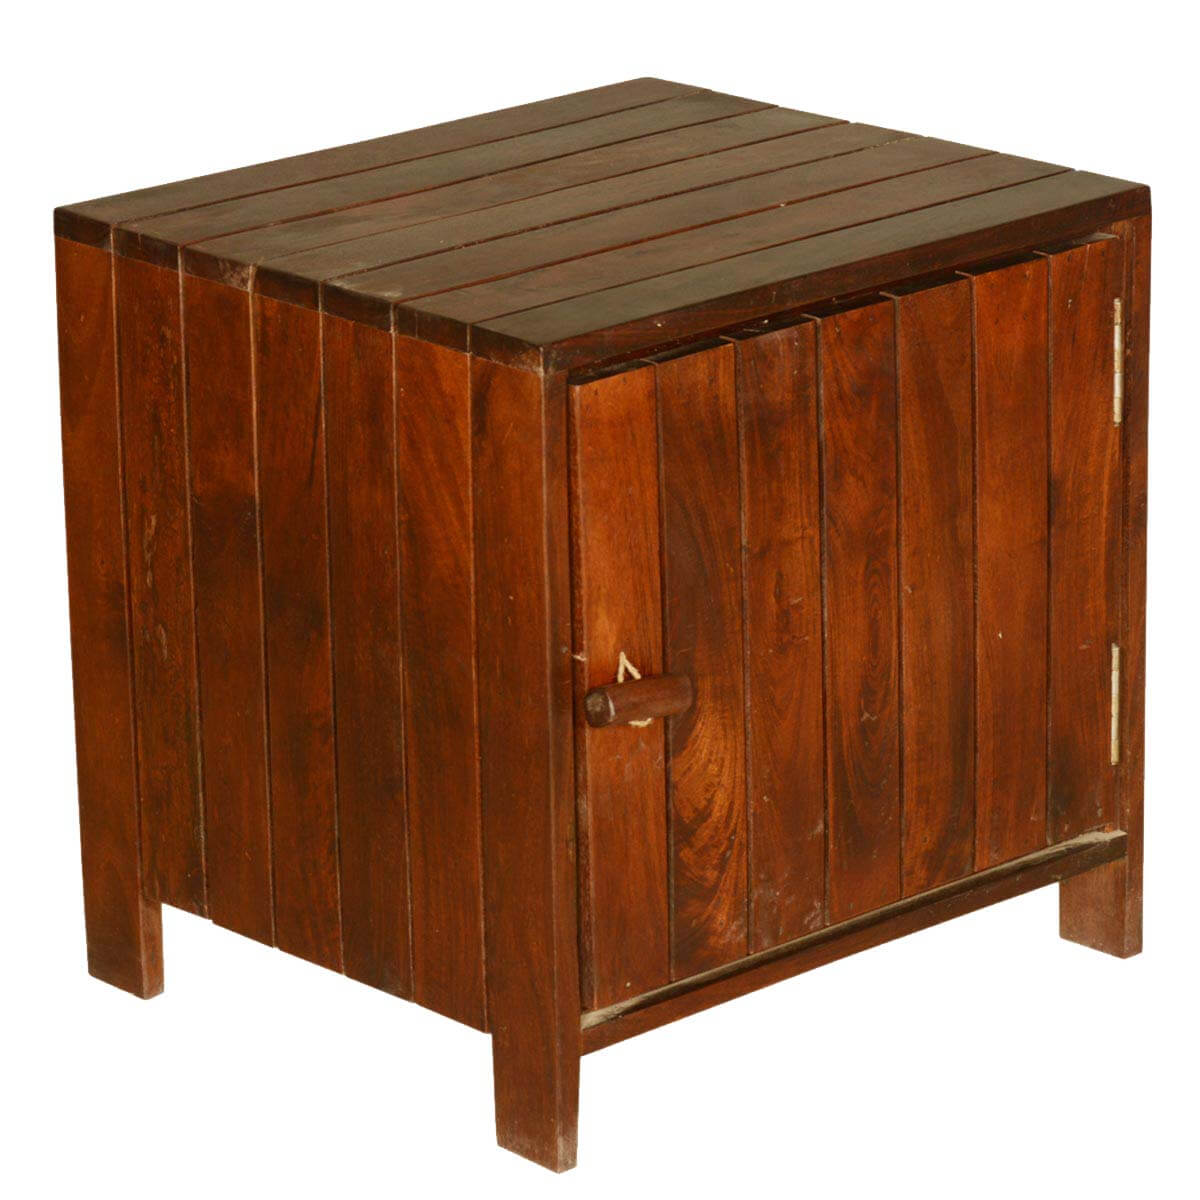 Zest Contemporary Standing Cube Solid Teak Wood End Table Cabinet